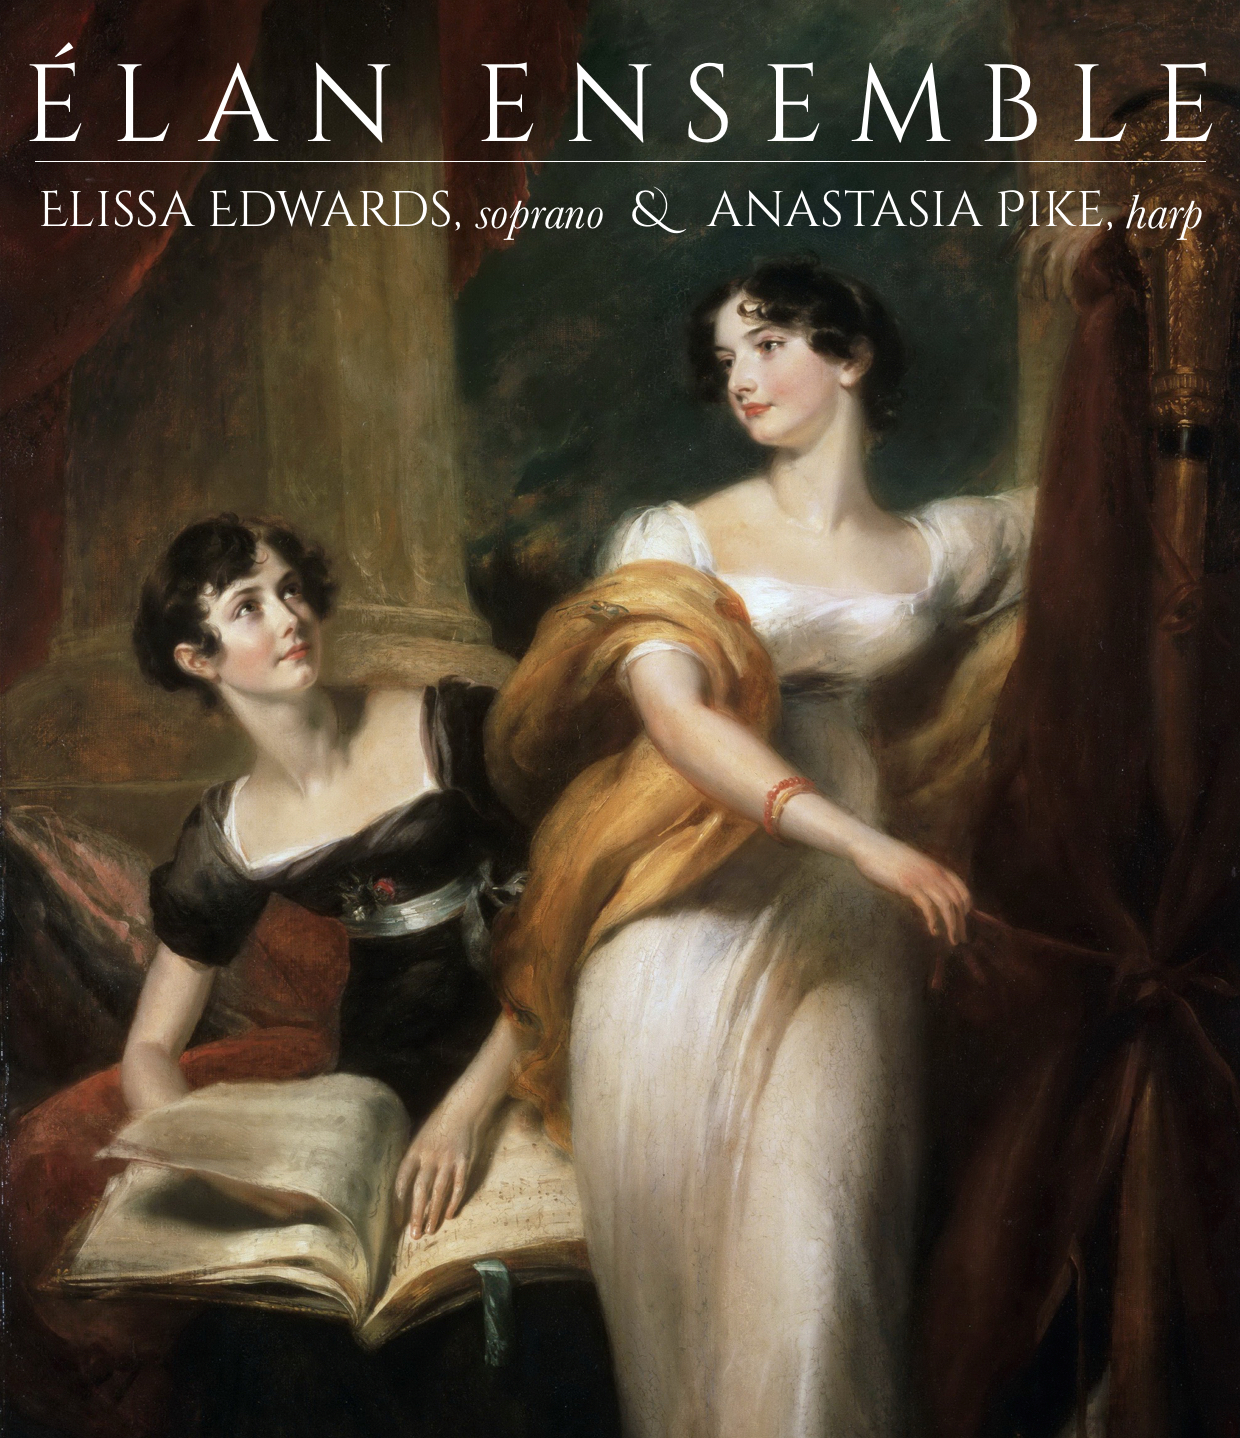 Elan Ensemble Duo Promotion Poster Image.jpg